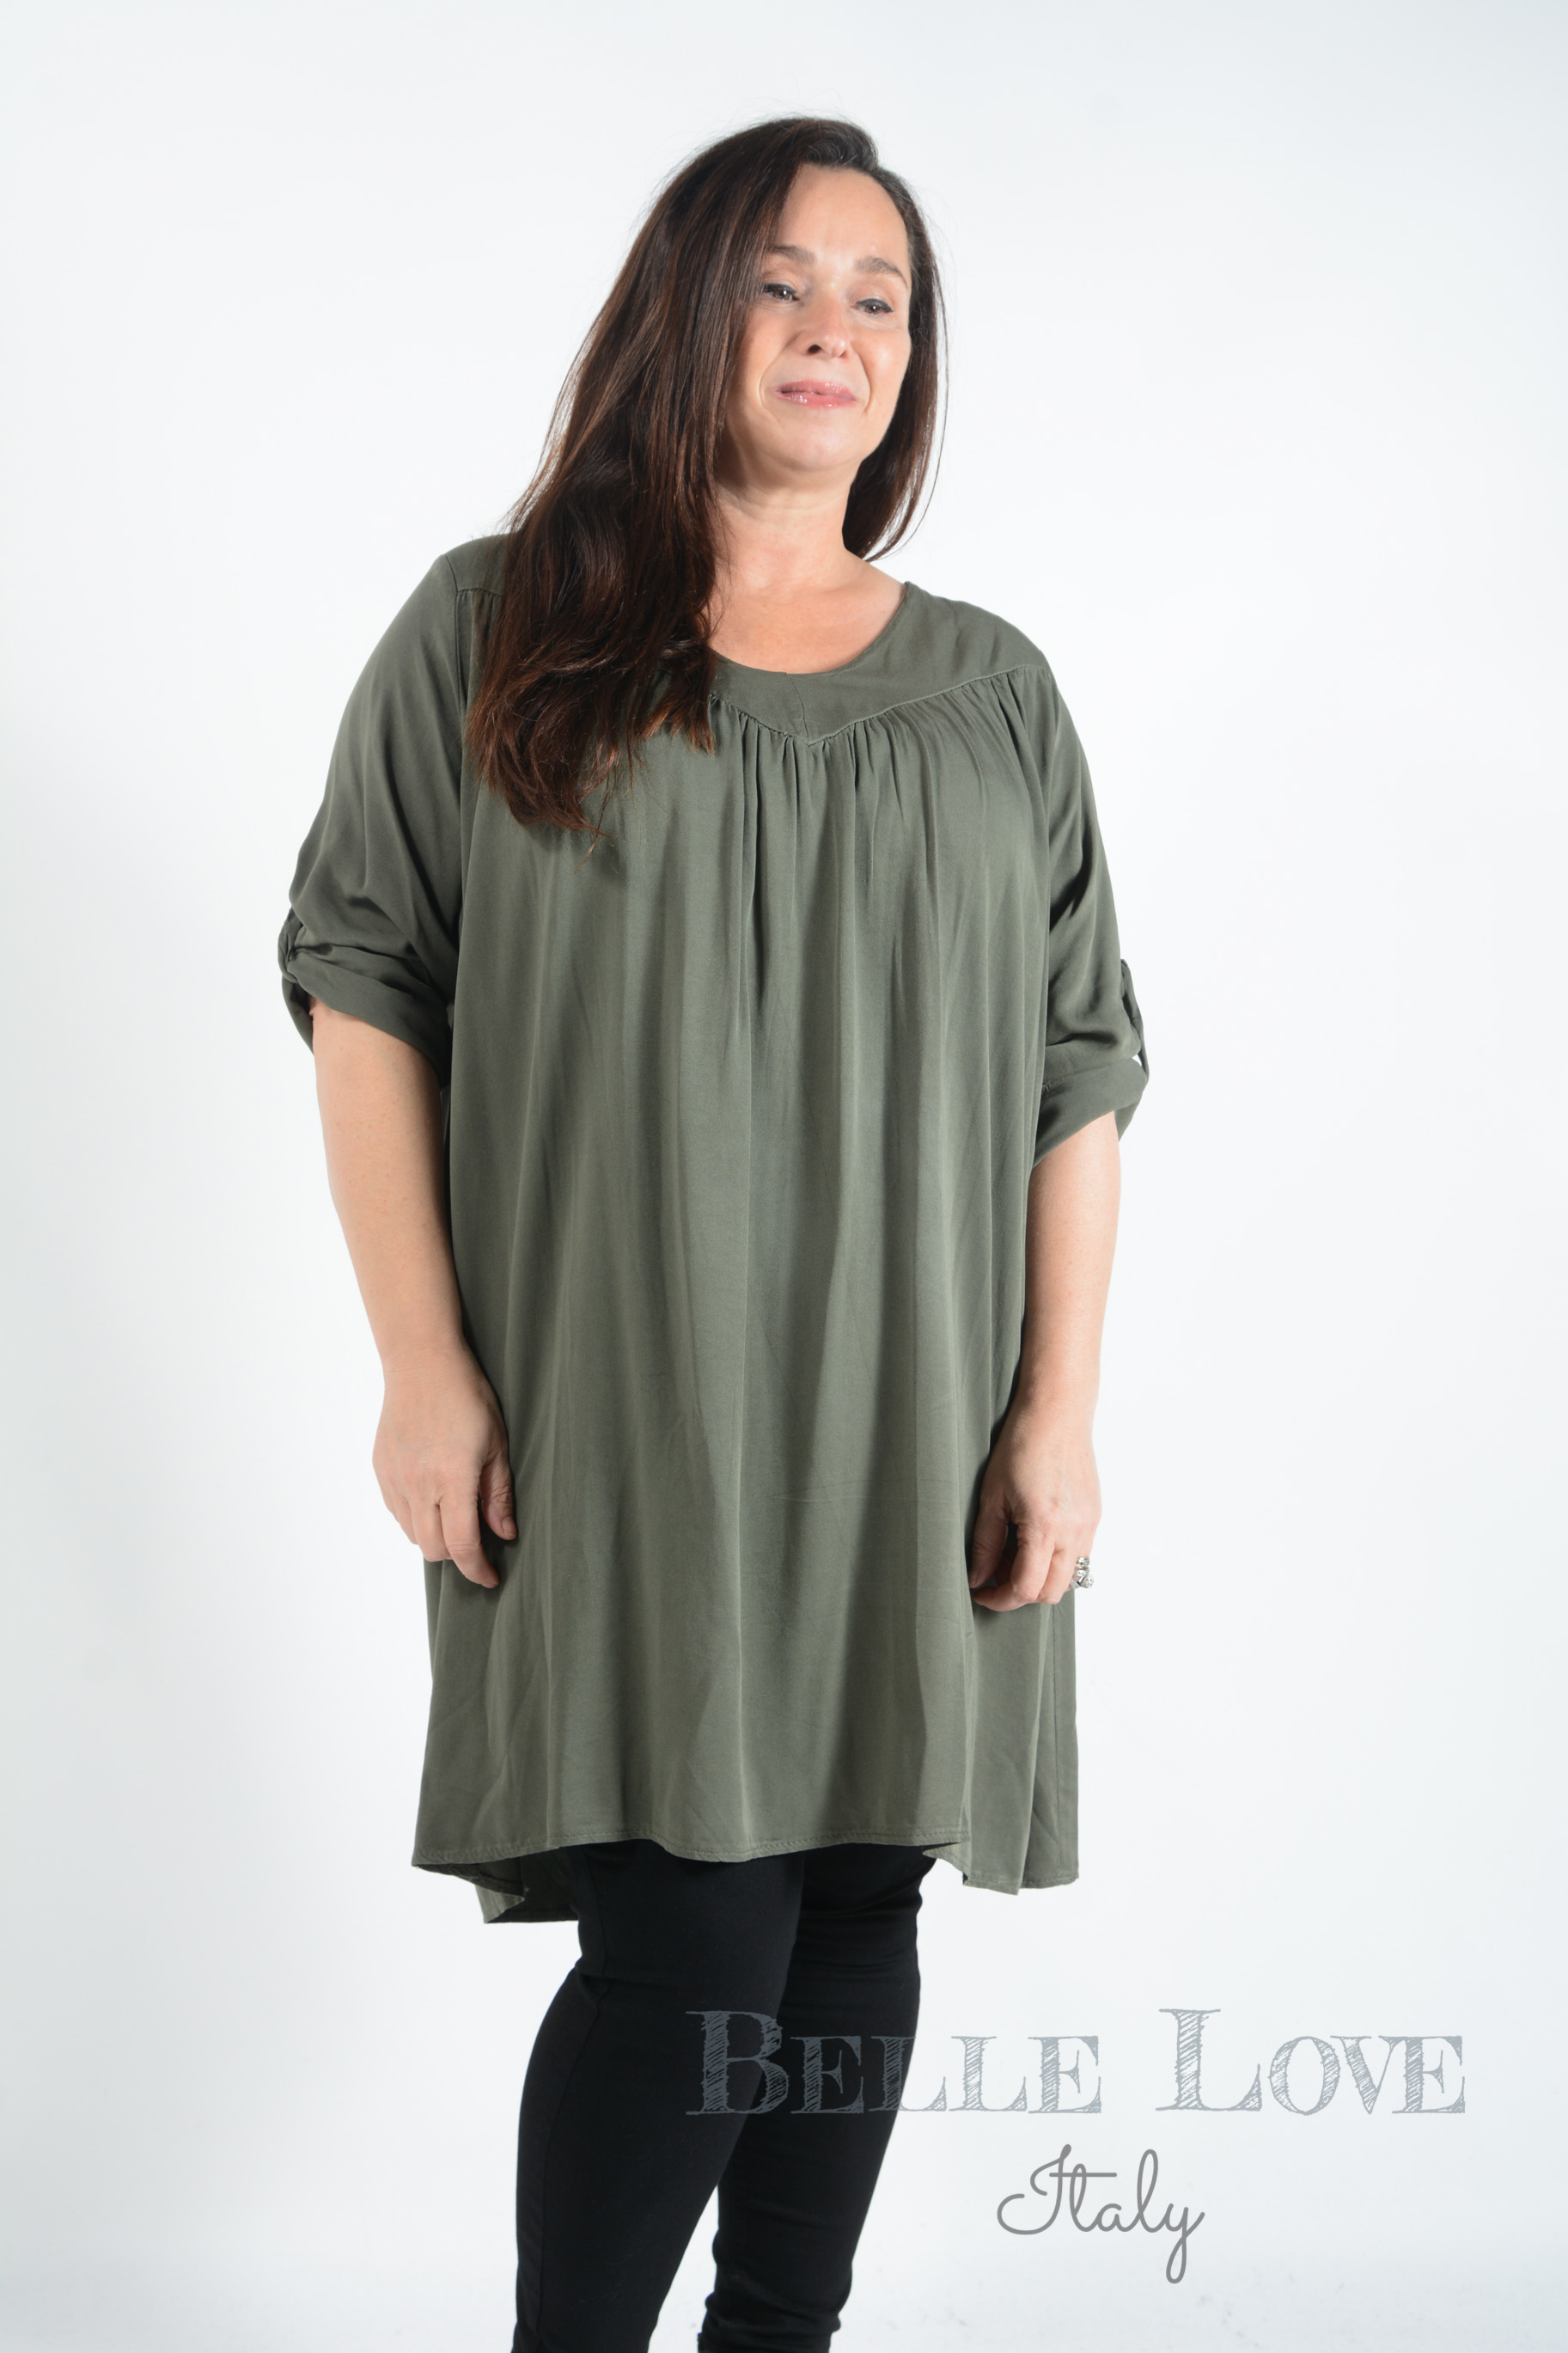 Belle Love Italy Kennedy Tunic